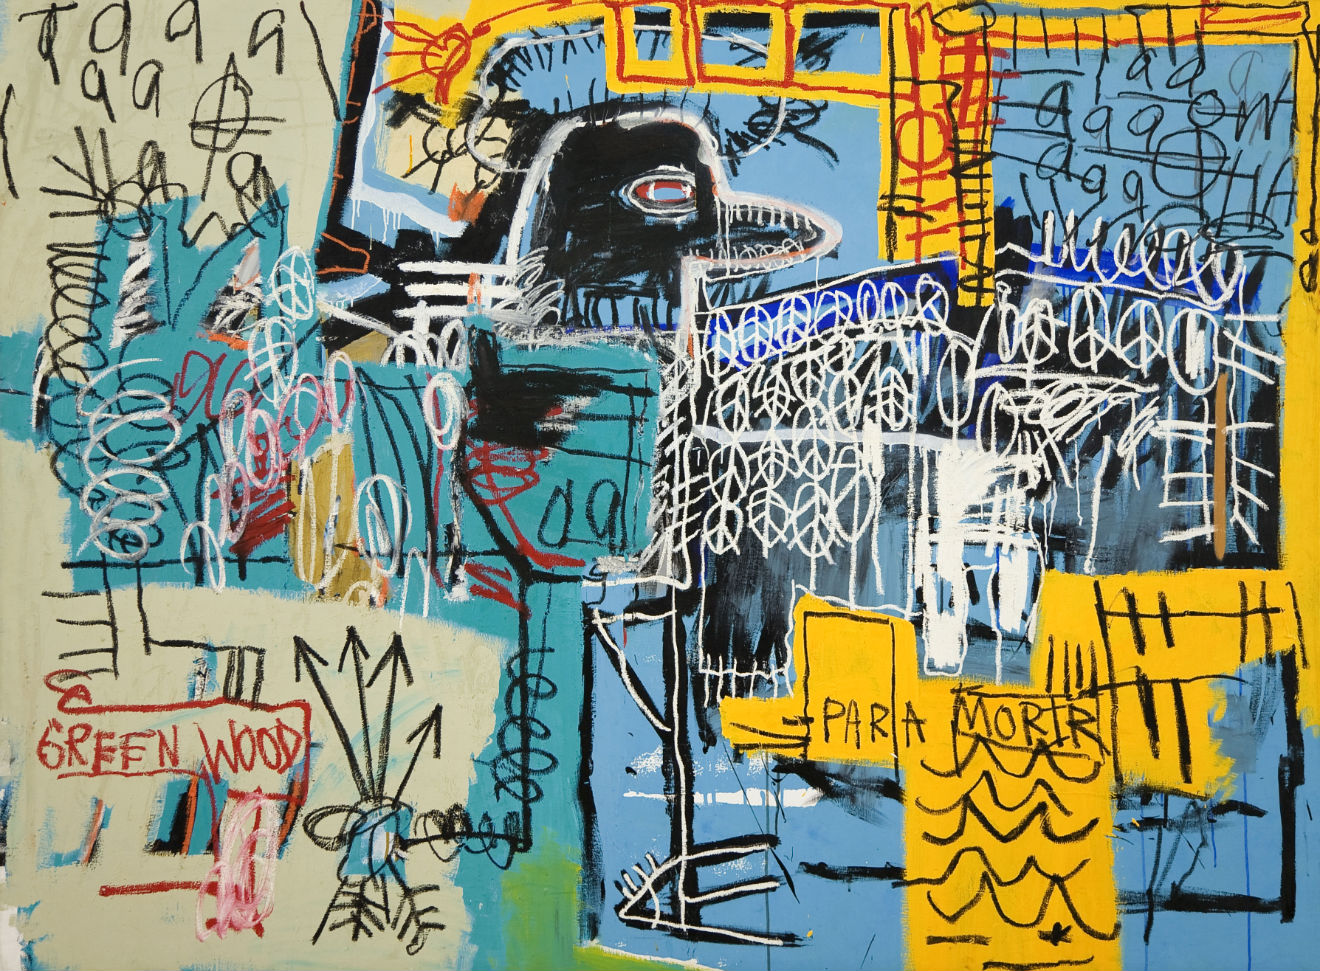 Jean-Michel Basquiat, Bird On Money, 1981. Acrylic and oil on canvas, 66 x 90 inches. Courtesy of Rubell Family Collection, Miami.